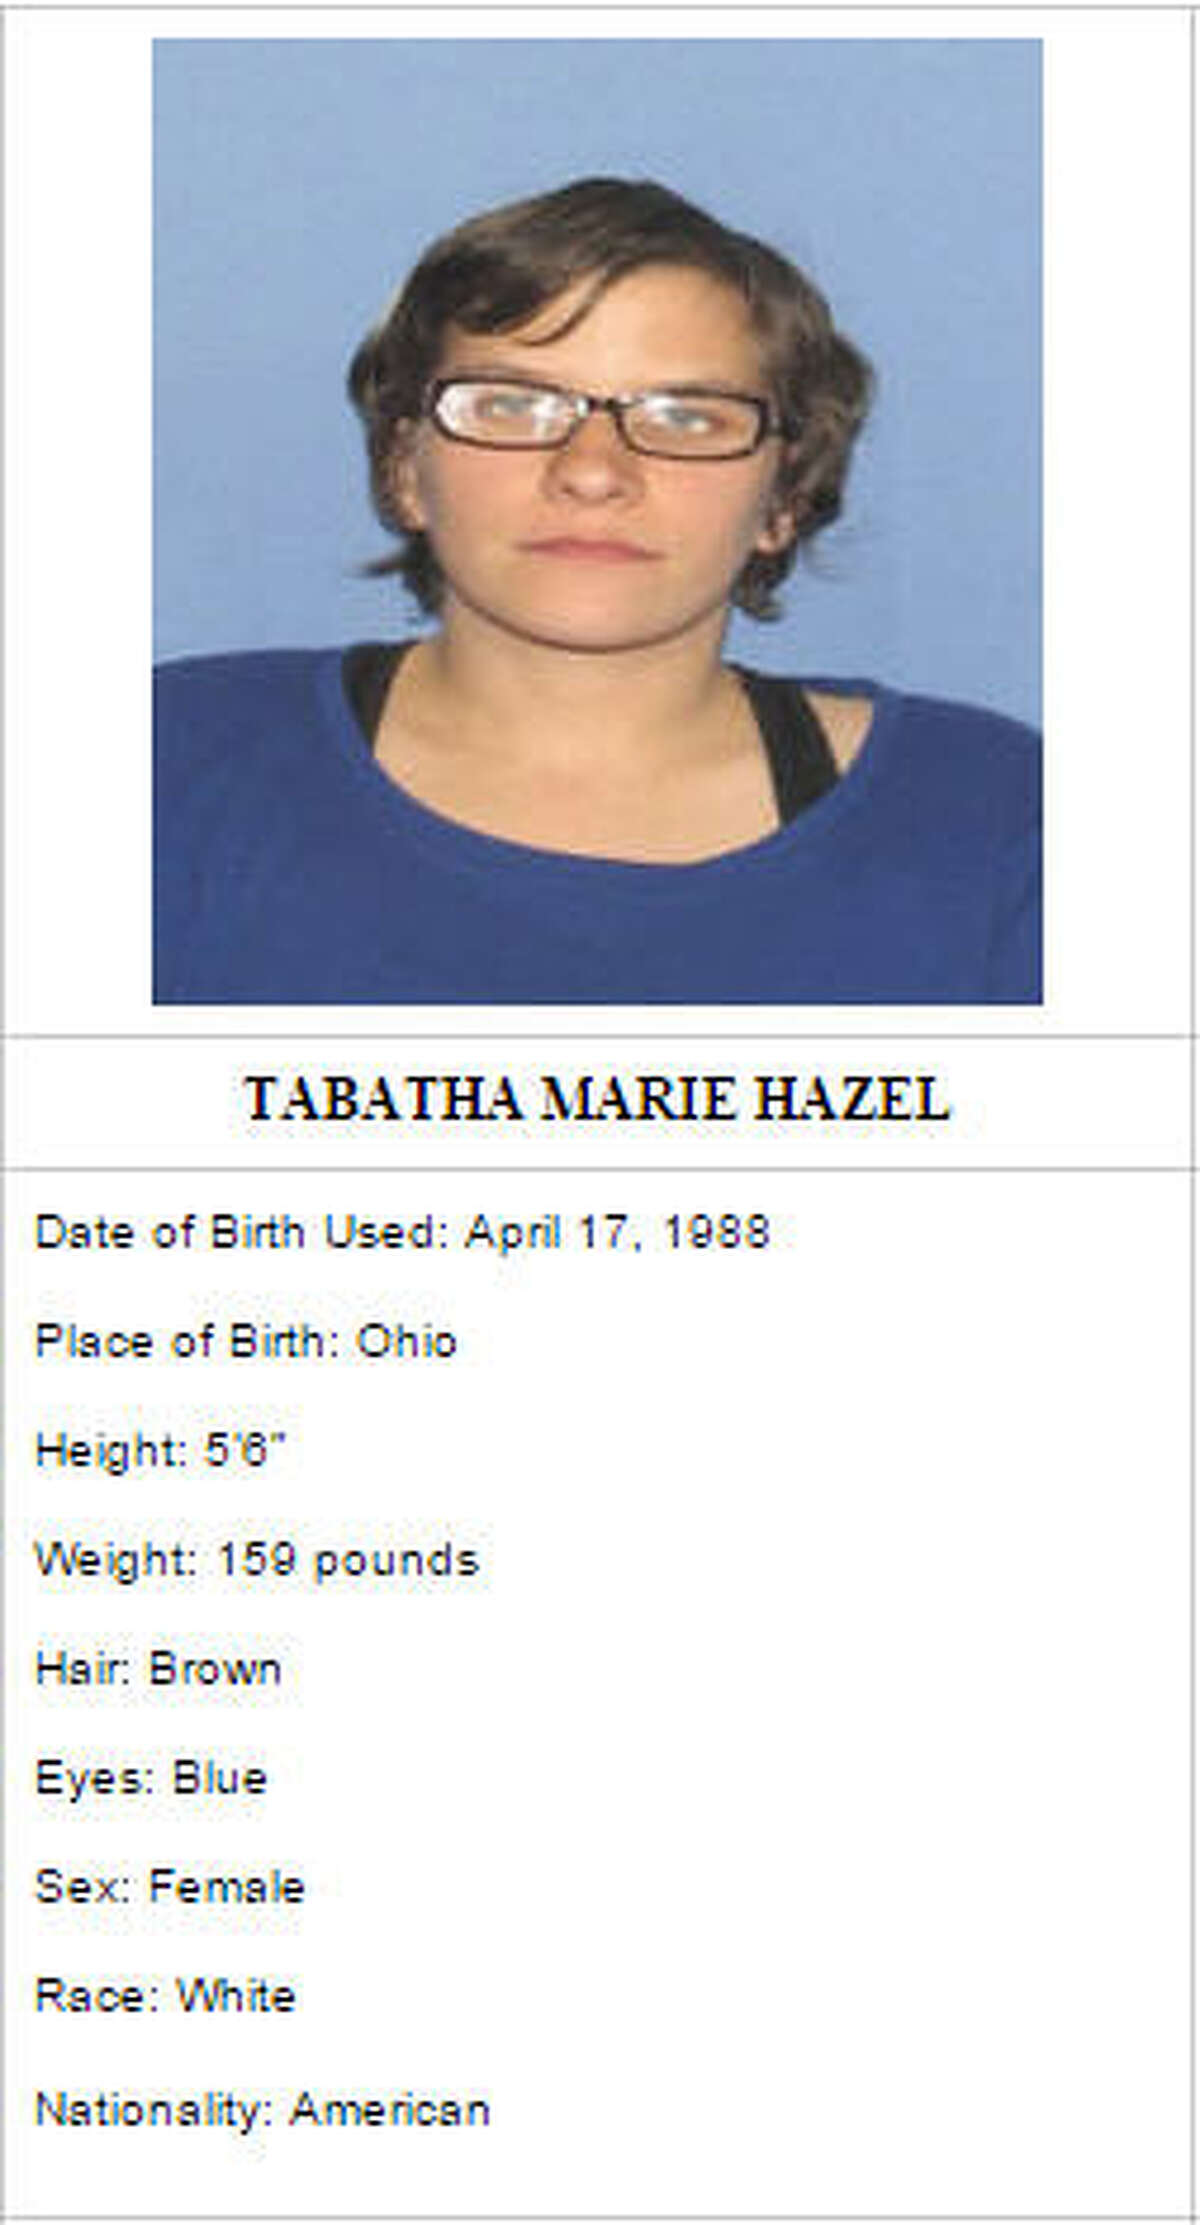 Robert Roy Clark, a convicted felon, is wanted for his alleged involvement in the murder of an elderly couple in Strasburg, Ohio, on January 21, 2015, as well as several armed robberies. The FBI believes he may be traveling with this woman, Tabatha Marie Hazel, who has been charged with first degree armed robbery.